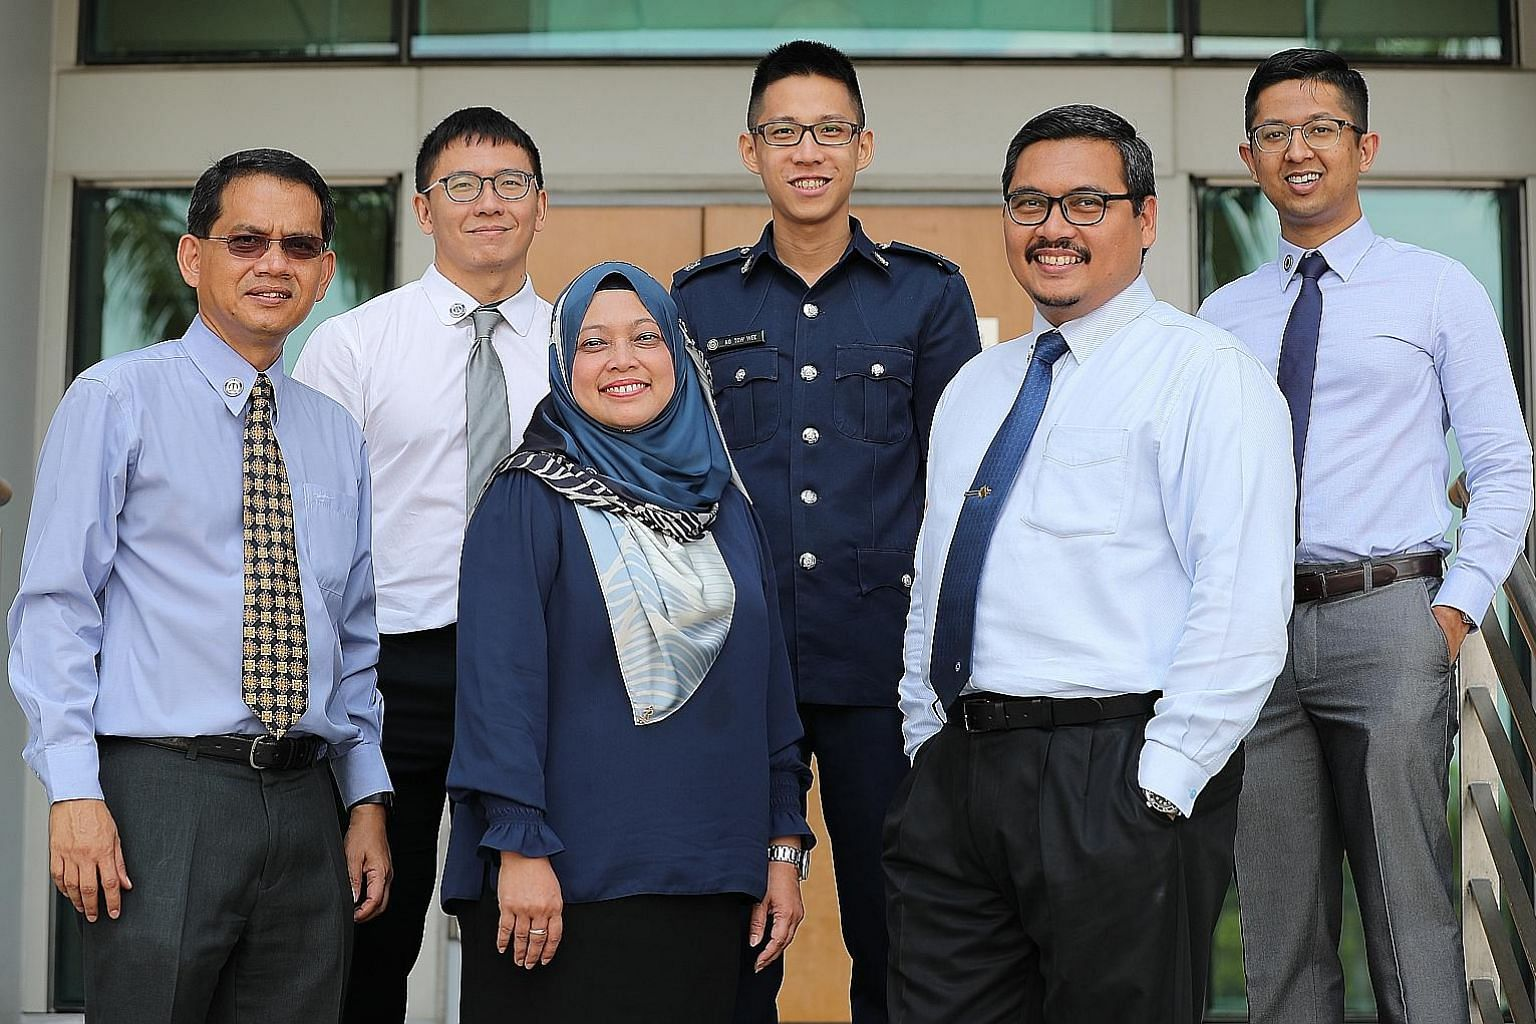 Among those honoured were (from left): Mr Mohamed Zulkifli Kassim, senior manager, community engagement unit, CNB; Mr Soh Weng Hon, manager (capability development), MSF; Ms Salina Samion, principal psychologist, CNB; Mr Ng Tow Wee, staff officer, cl